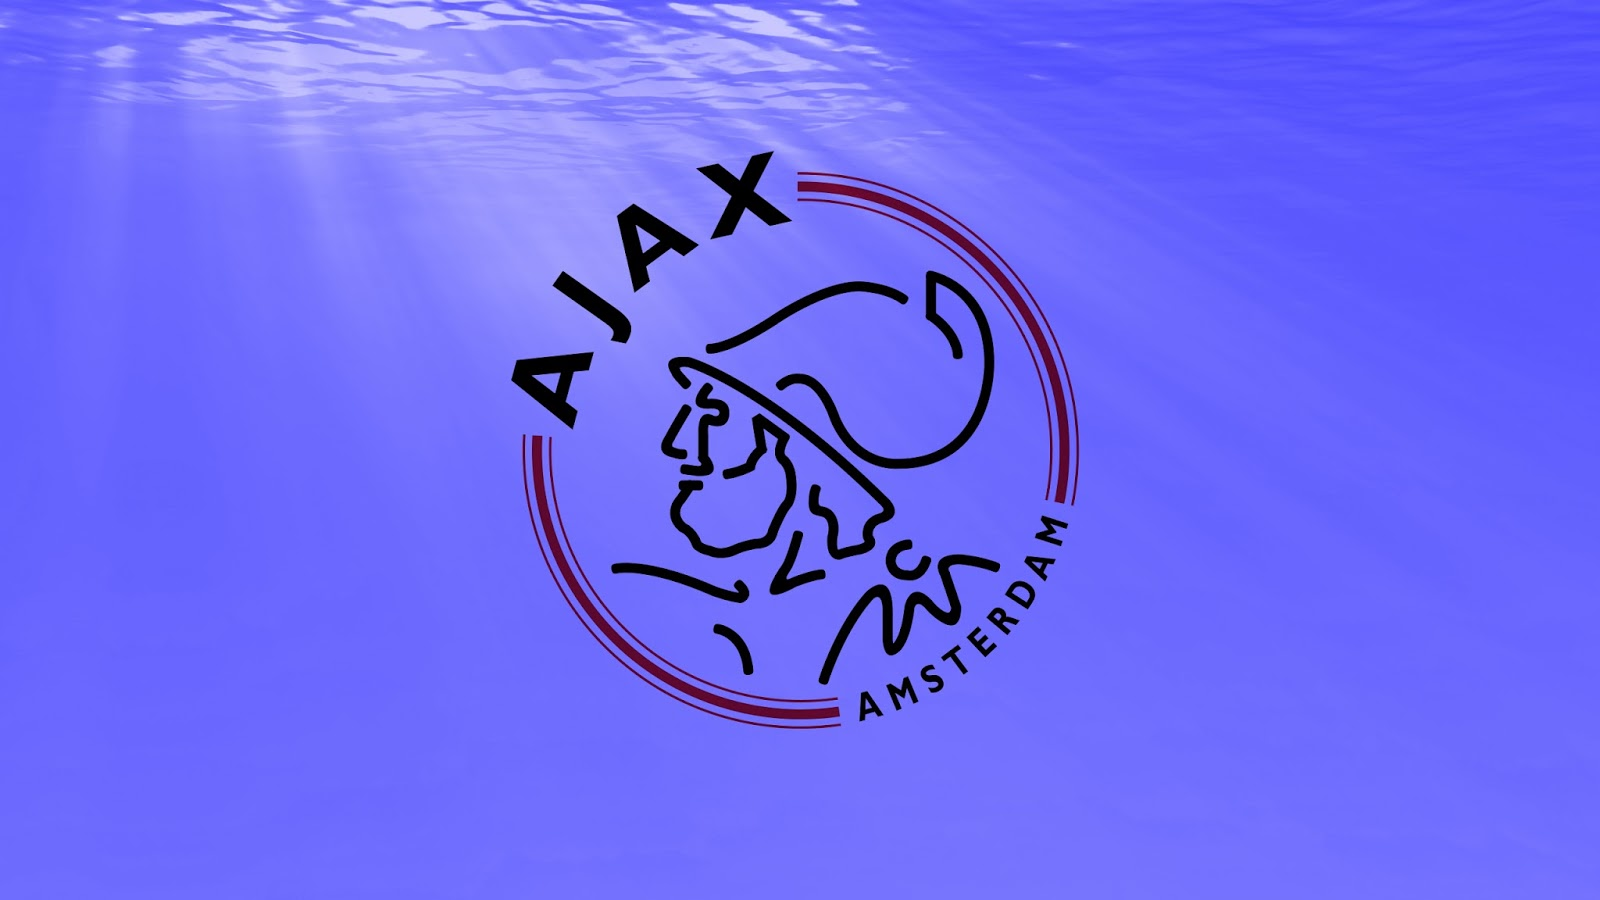 Ajax Wallpapers | HD Wallpapers